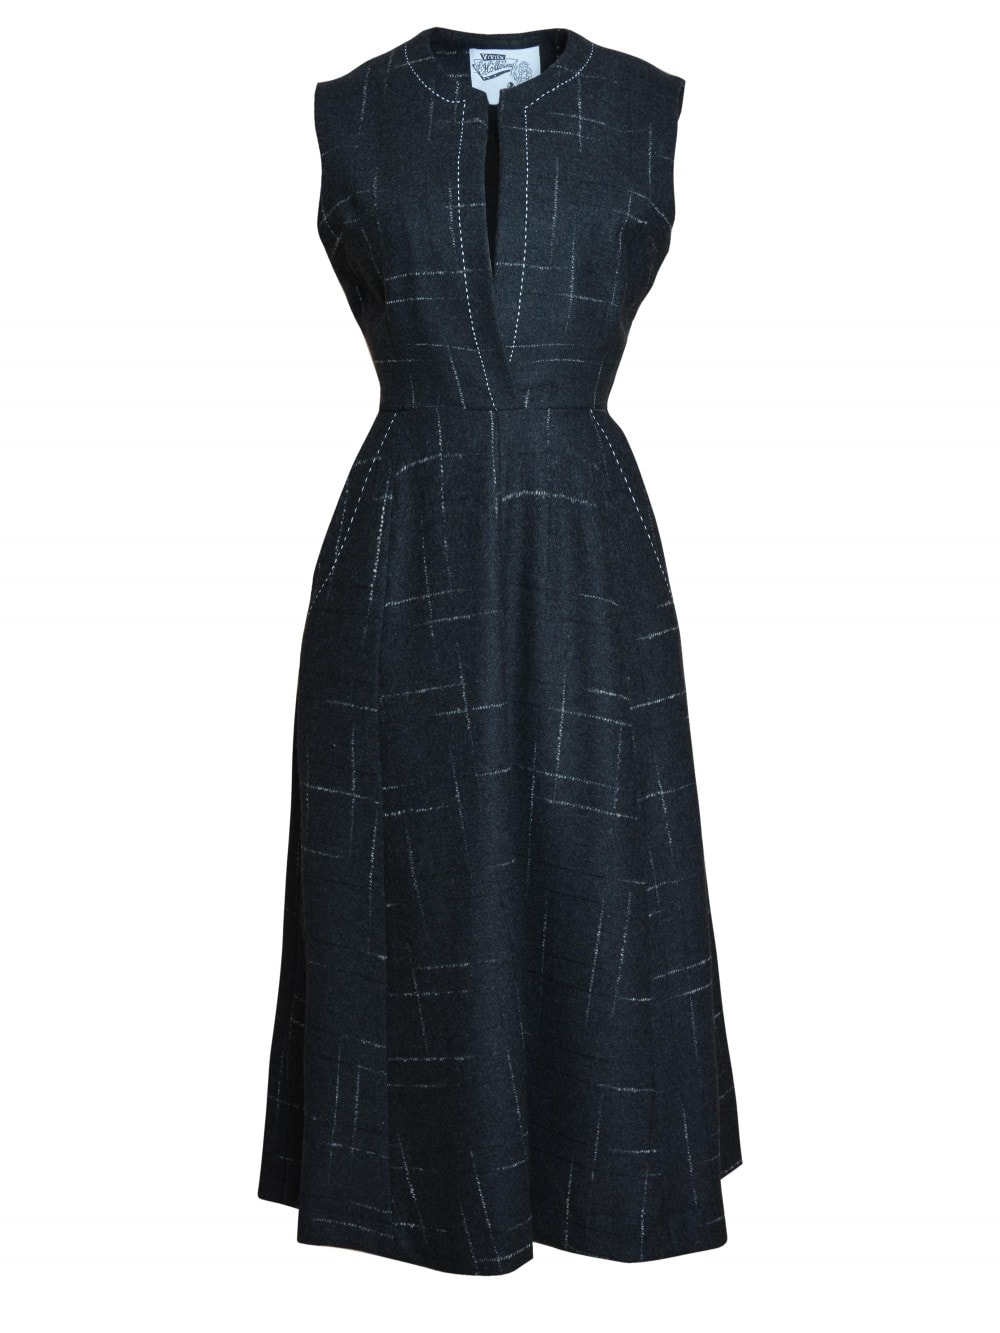 4a3ec9cddddb15 Laura Dress Charcoal Fleck from Vivien of Holloway